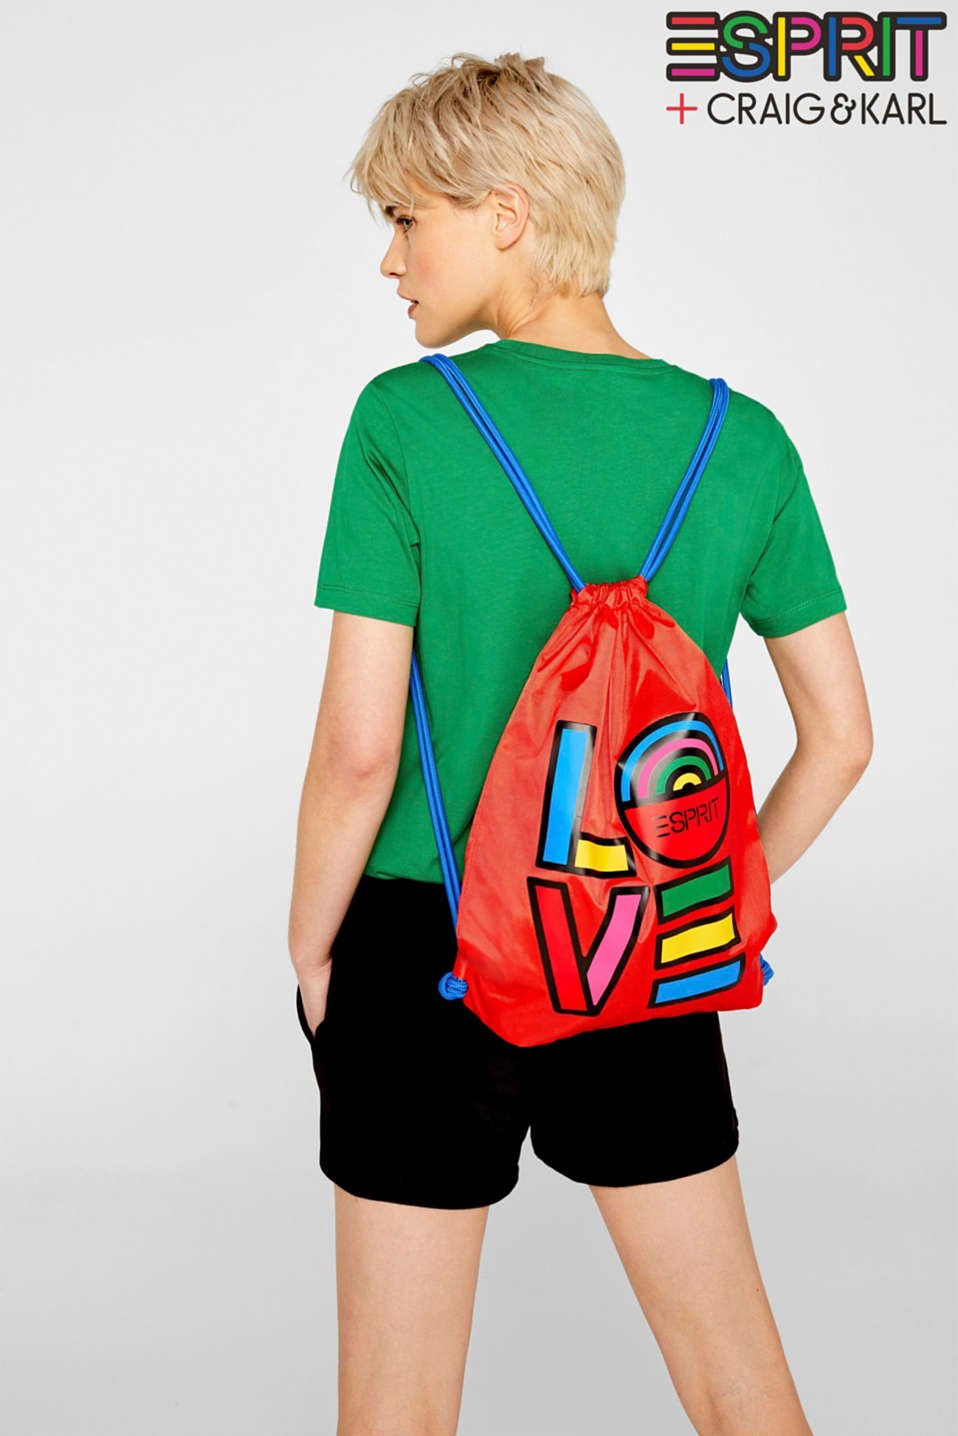 CRAIG & KARL: love print gym bag